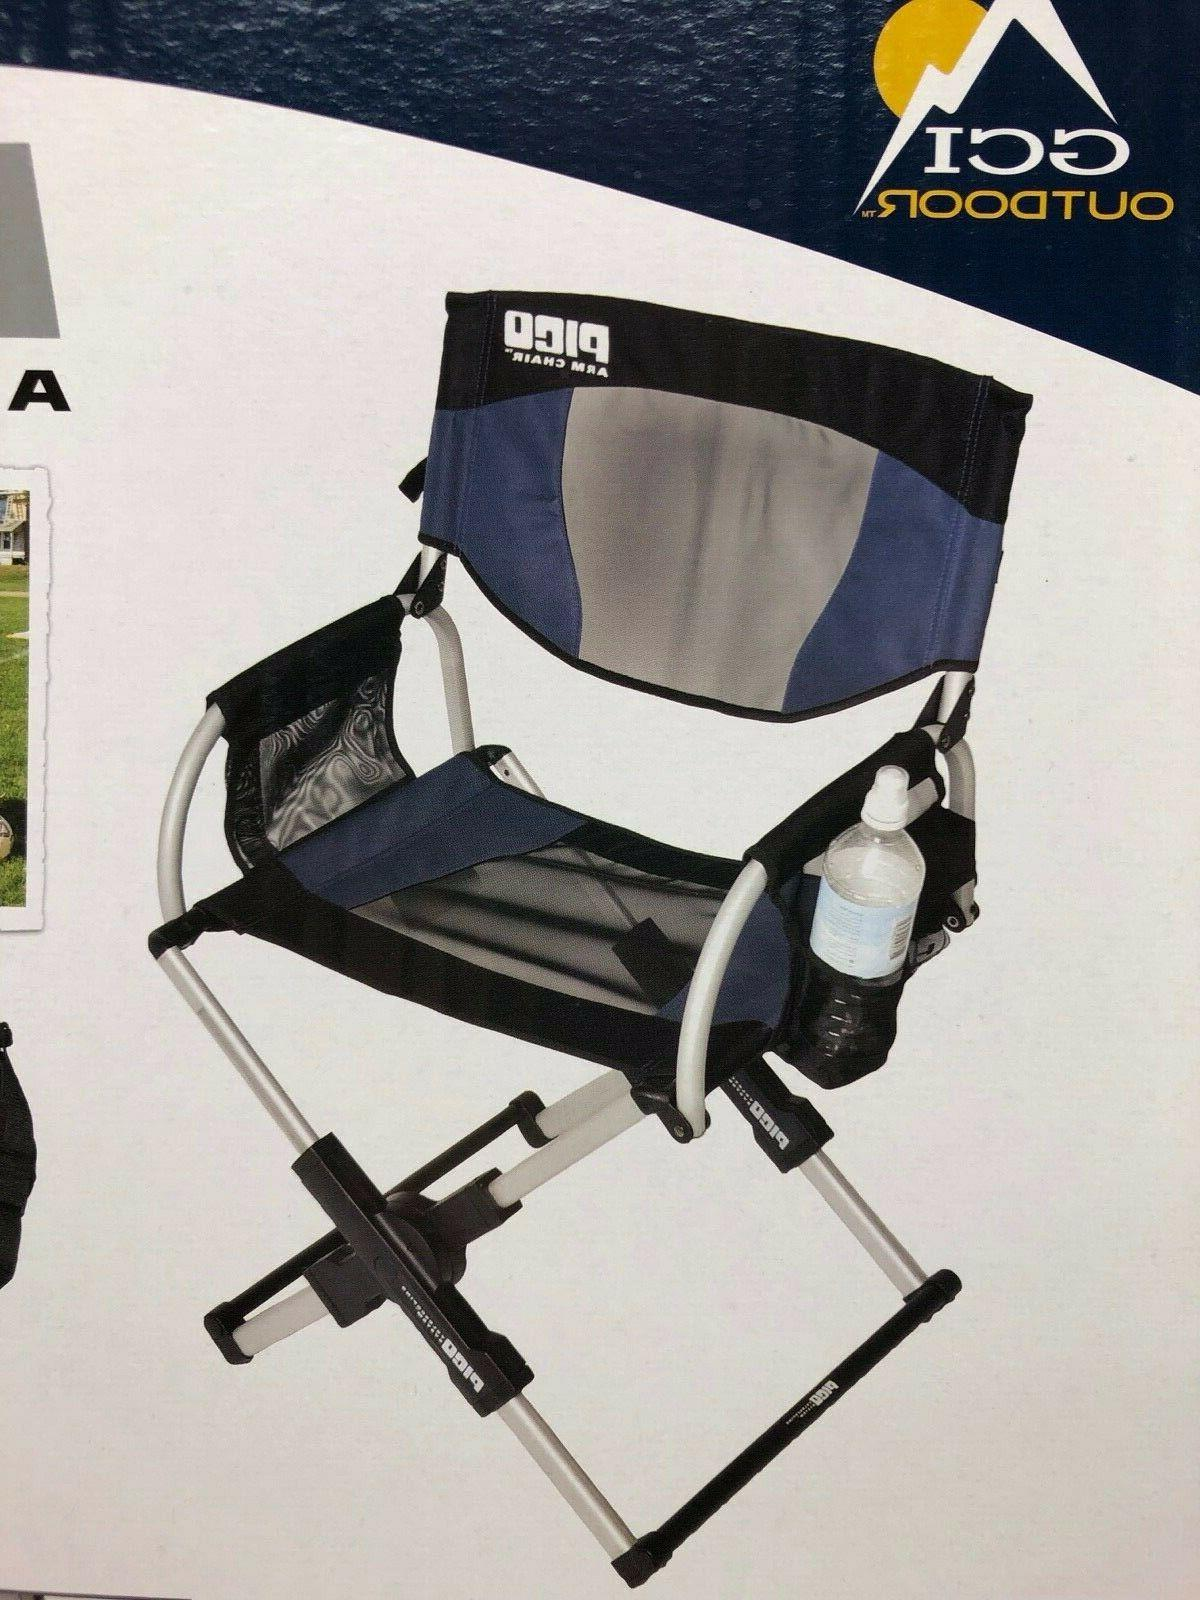 pico compact telescoping folding chair with carry